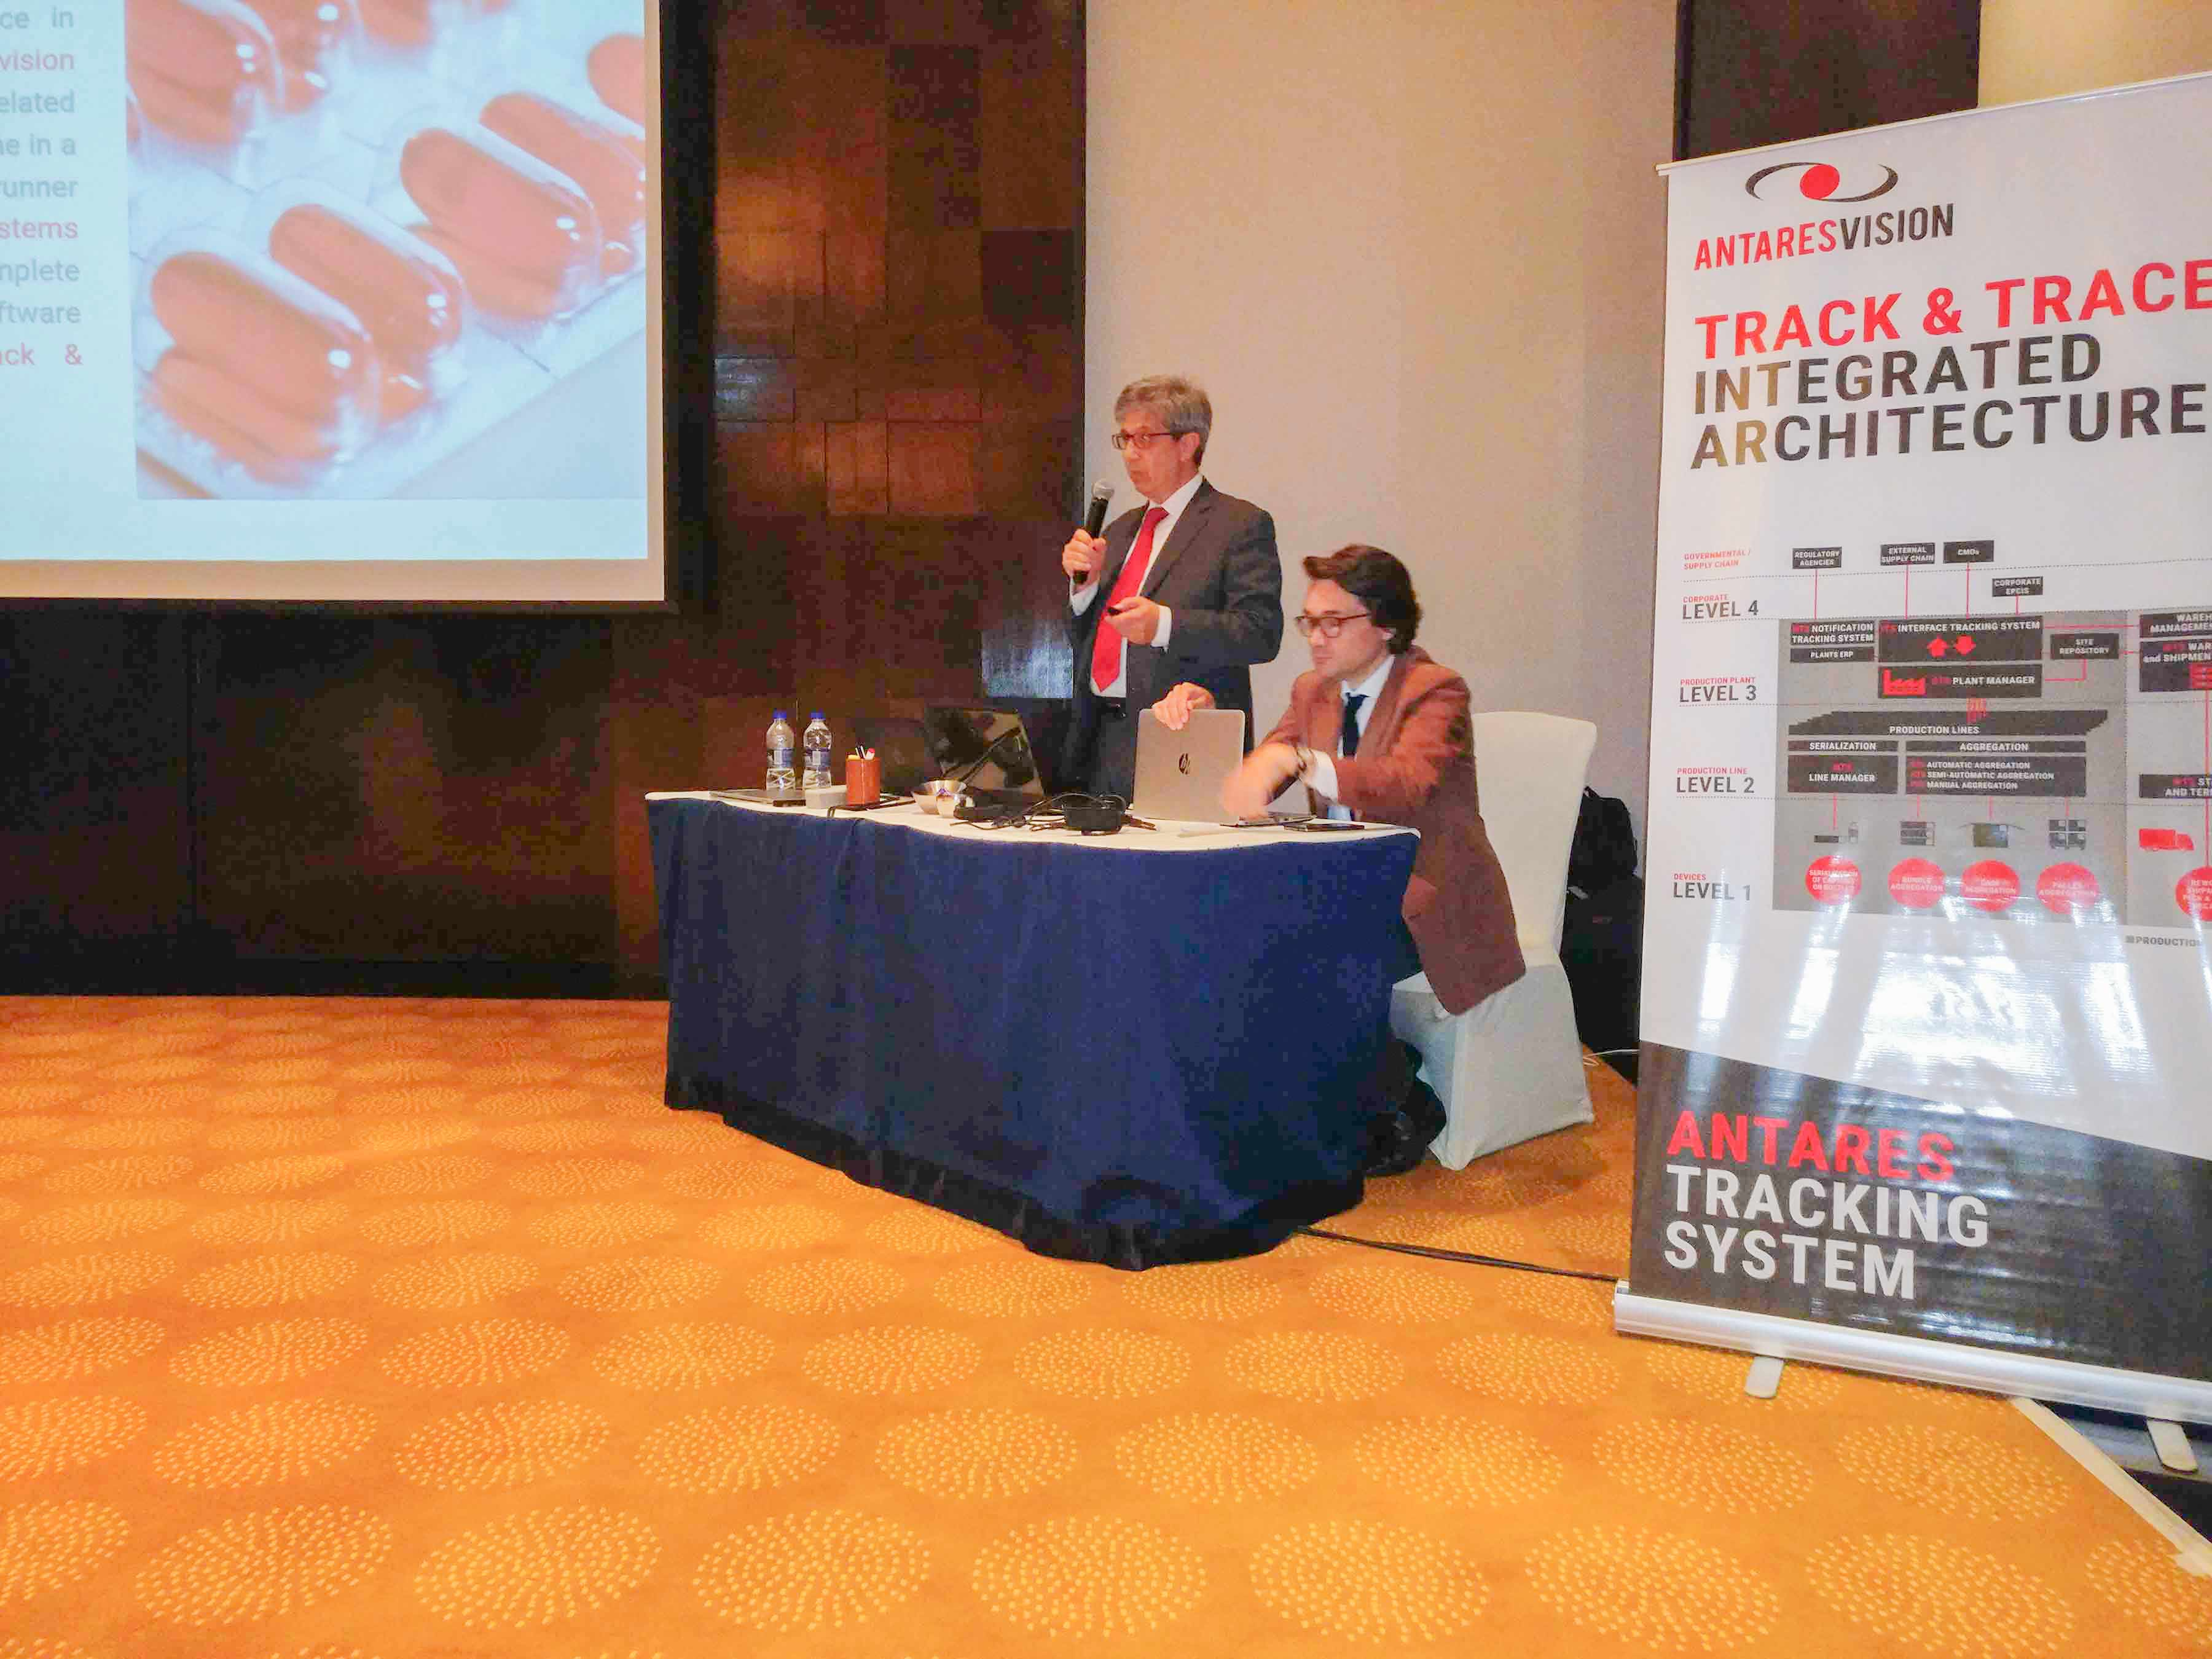 Track and Trace - Presentation